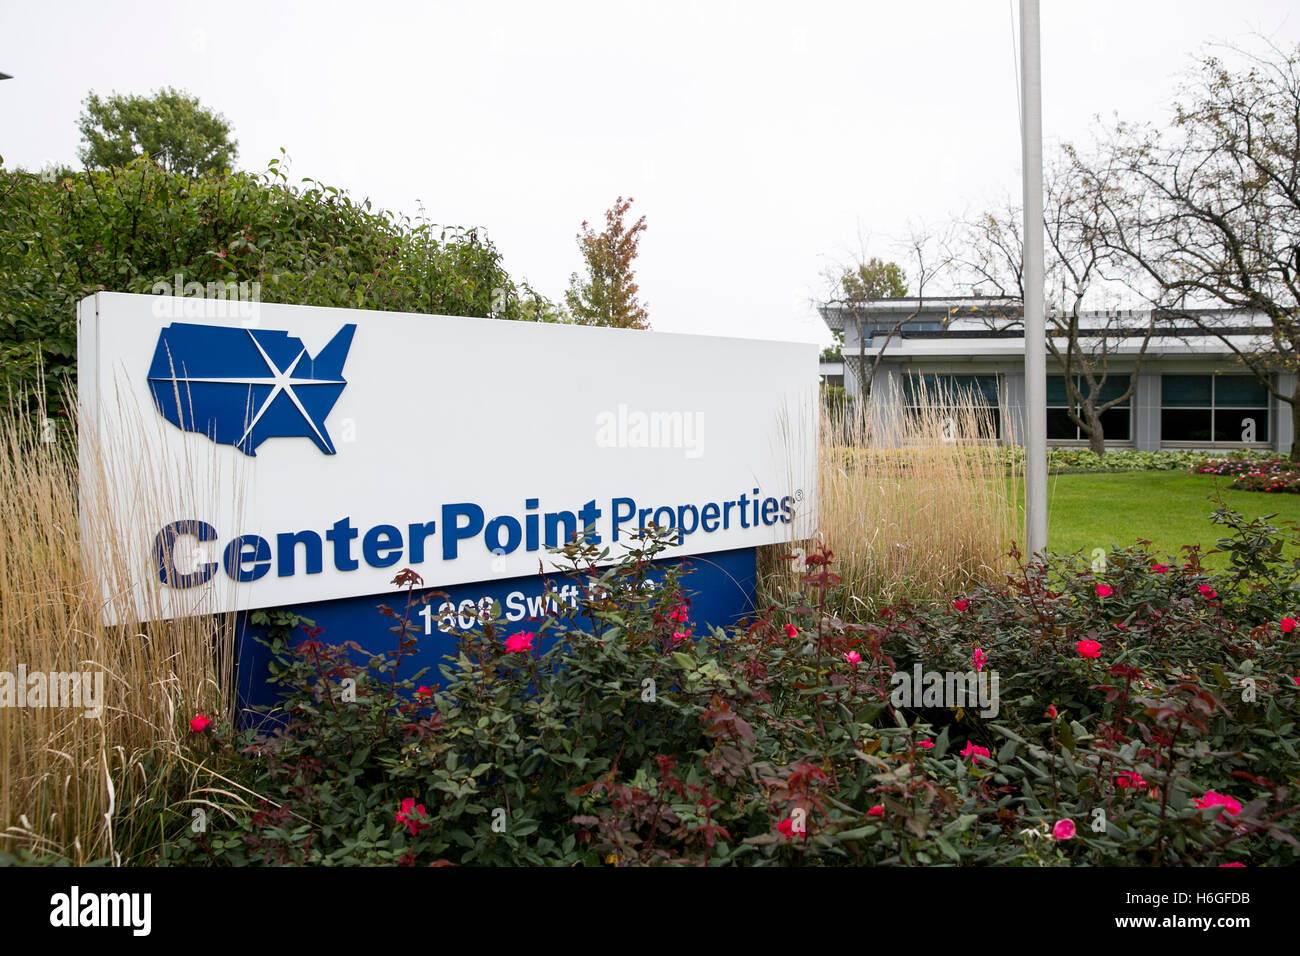 A logo sign outside of the headquarters of CenterPoint Properties in Oak Brook, Illinois on October 15, 2016. - Stock Image